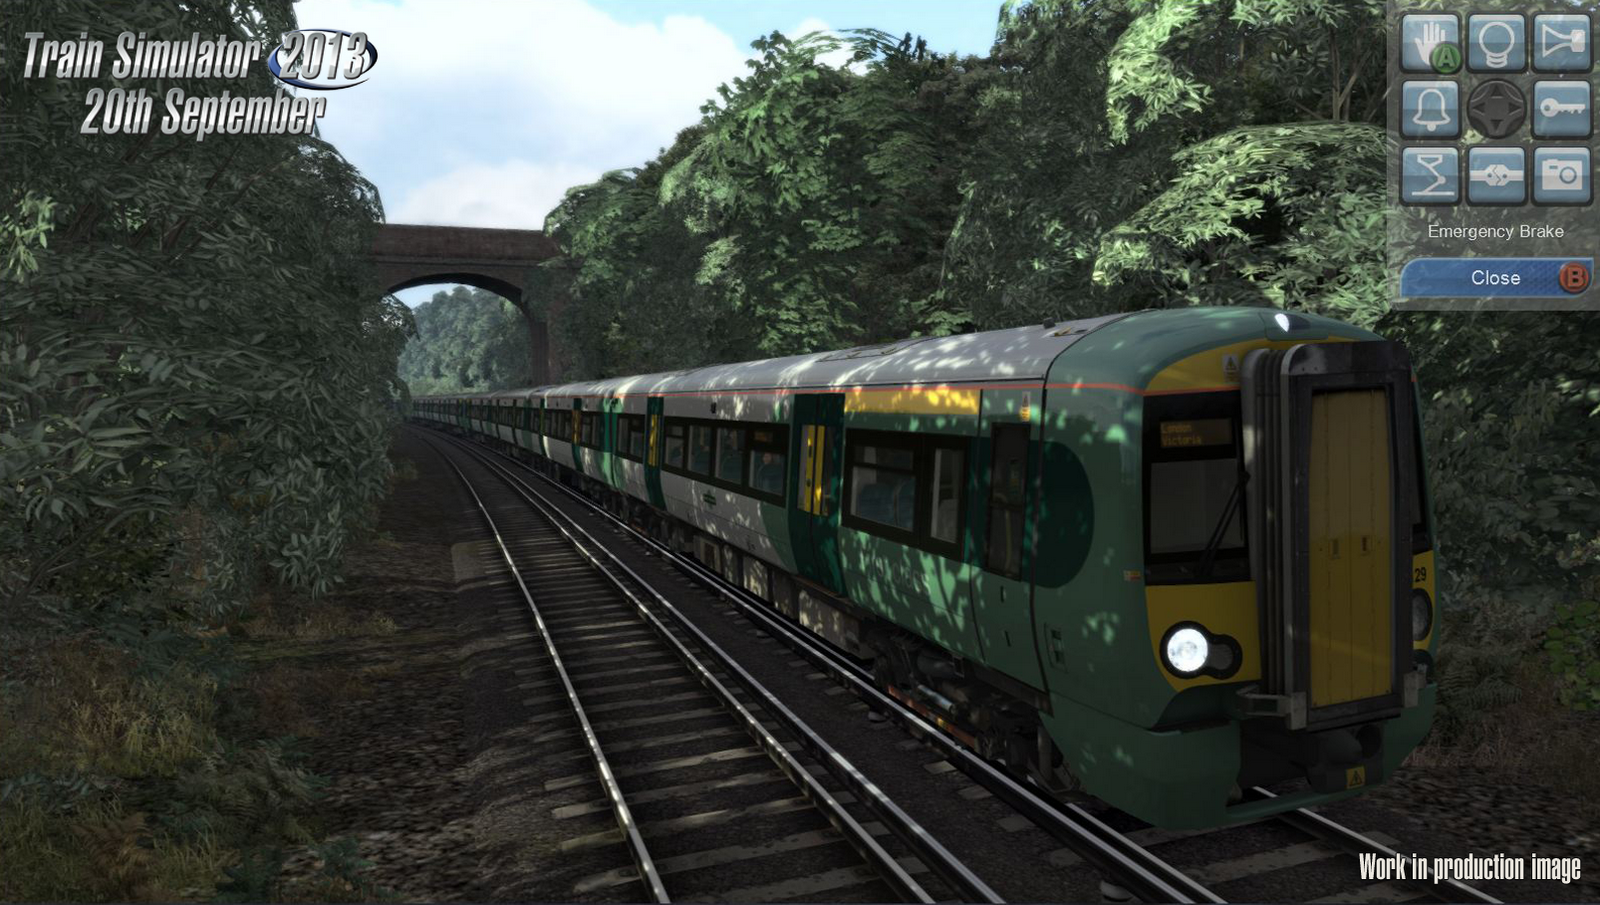 Train Simulator 2013 Announced – Release 20th September ...